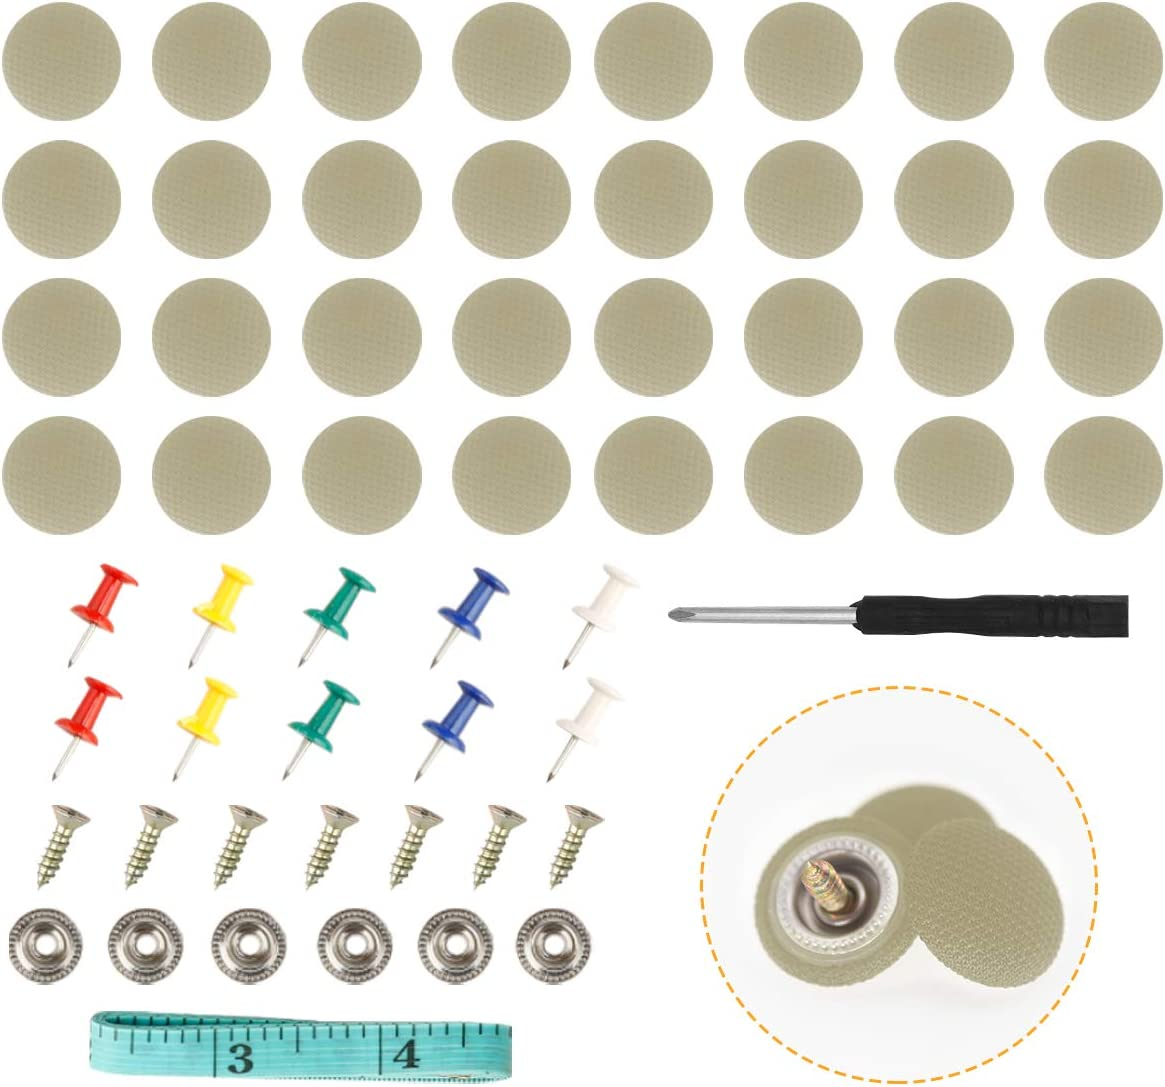 HighFree Car Roof Repair Rivets Headliner Repair Button 60 pcs Auto Roof Snap Rivets Retainer for Interior Ceiling Cloth Fixing Repair Buckle with Installation Tool Grey Beige Grid